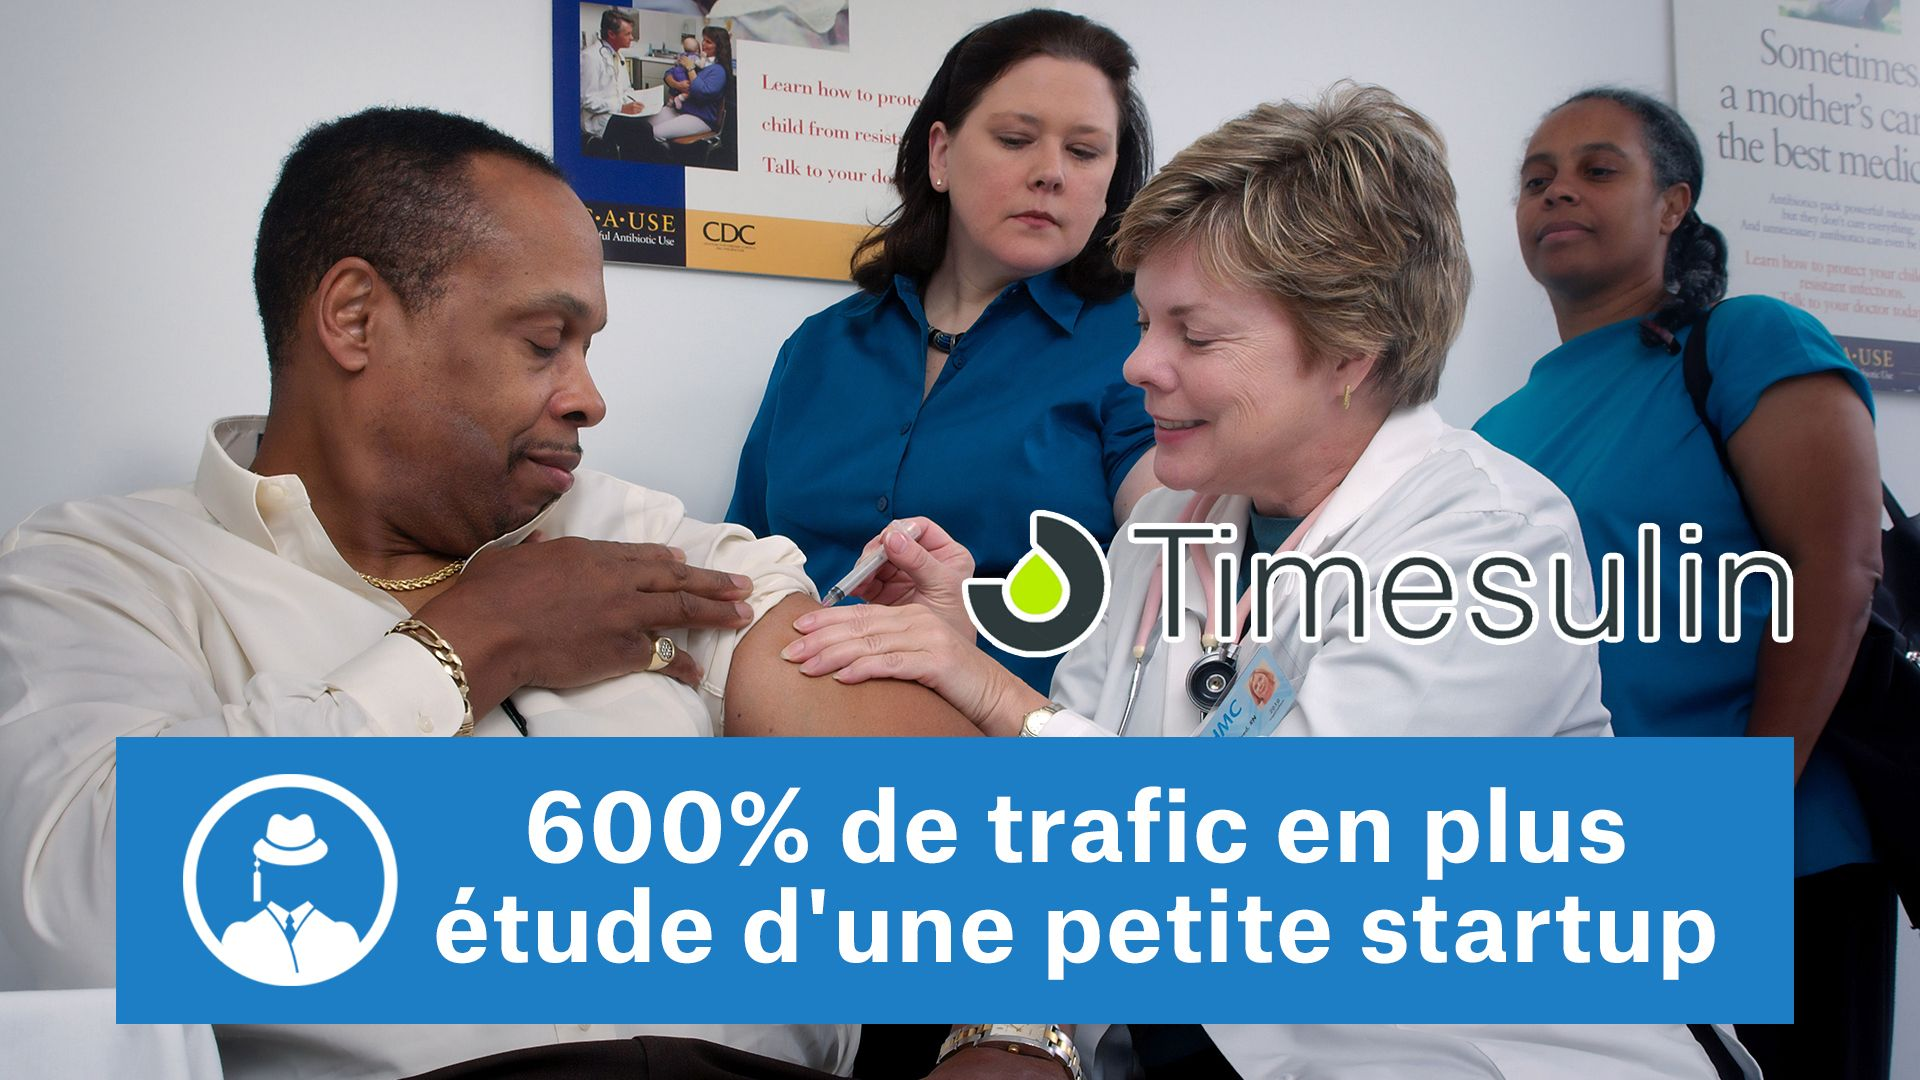 600% de trafic en plus : Etude d'une petite Startup #GrowthHacking #WebMarketing #FormationGrowthHacking #CentreDeFormationFrance #TunnelAARRR #AARRR #SocialMedia #CommunityManagement #SEO #Timesulin